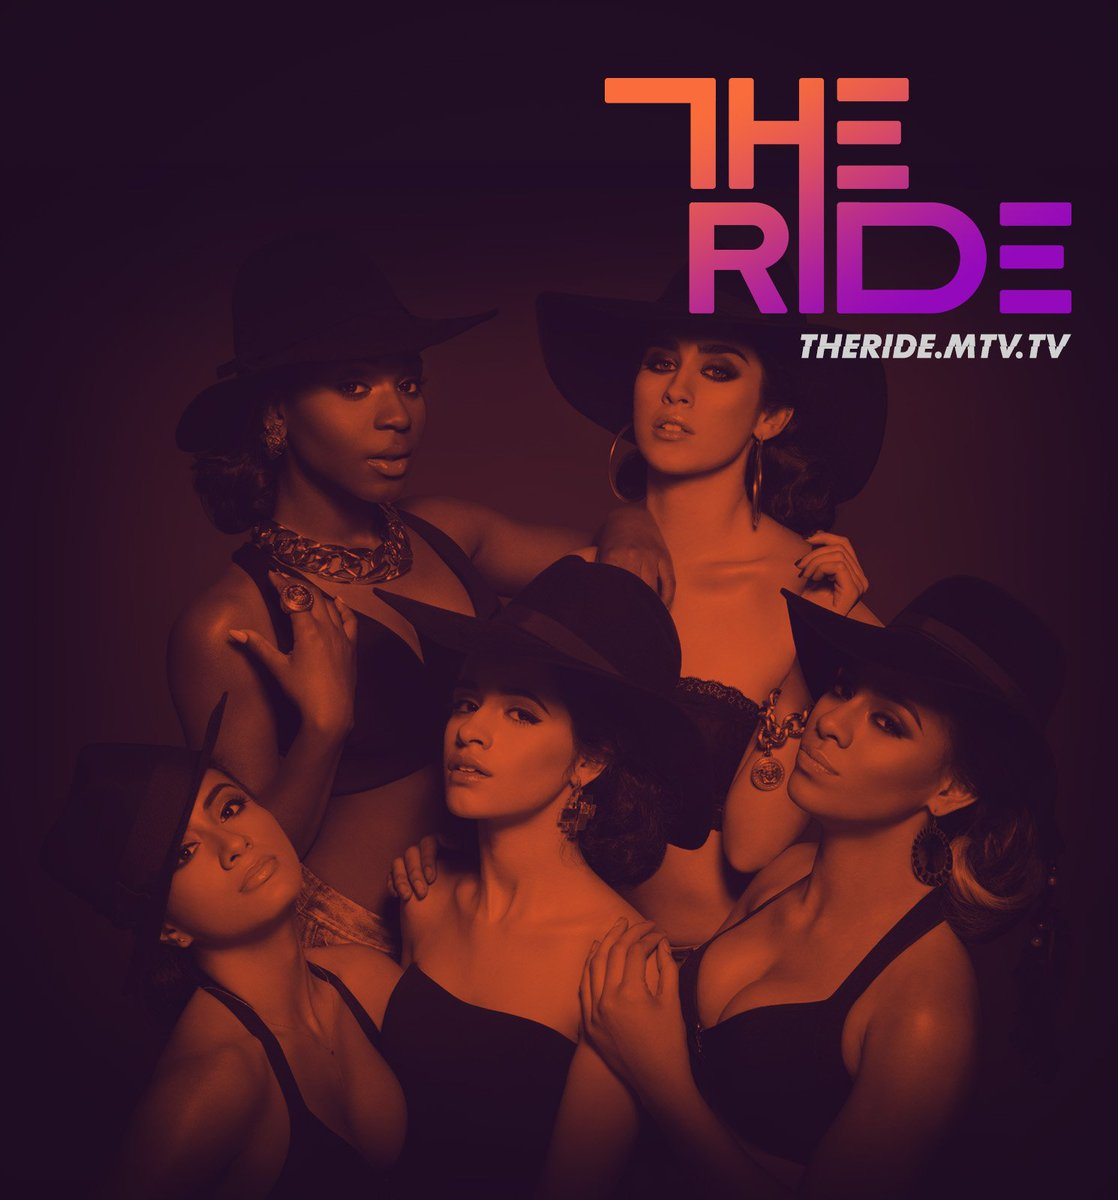 """The Ride: @FifthHarmony"" airs TONIGHT at 9PM EST showcasing the quintet's rise to chart-topping stardom! #TheRide5H https://t.co/rhDkXBRnUN"